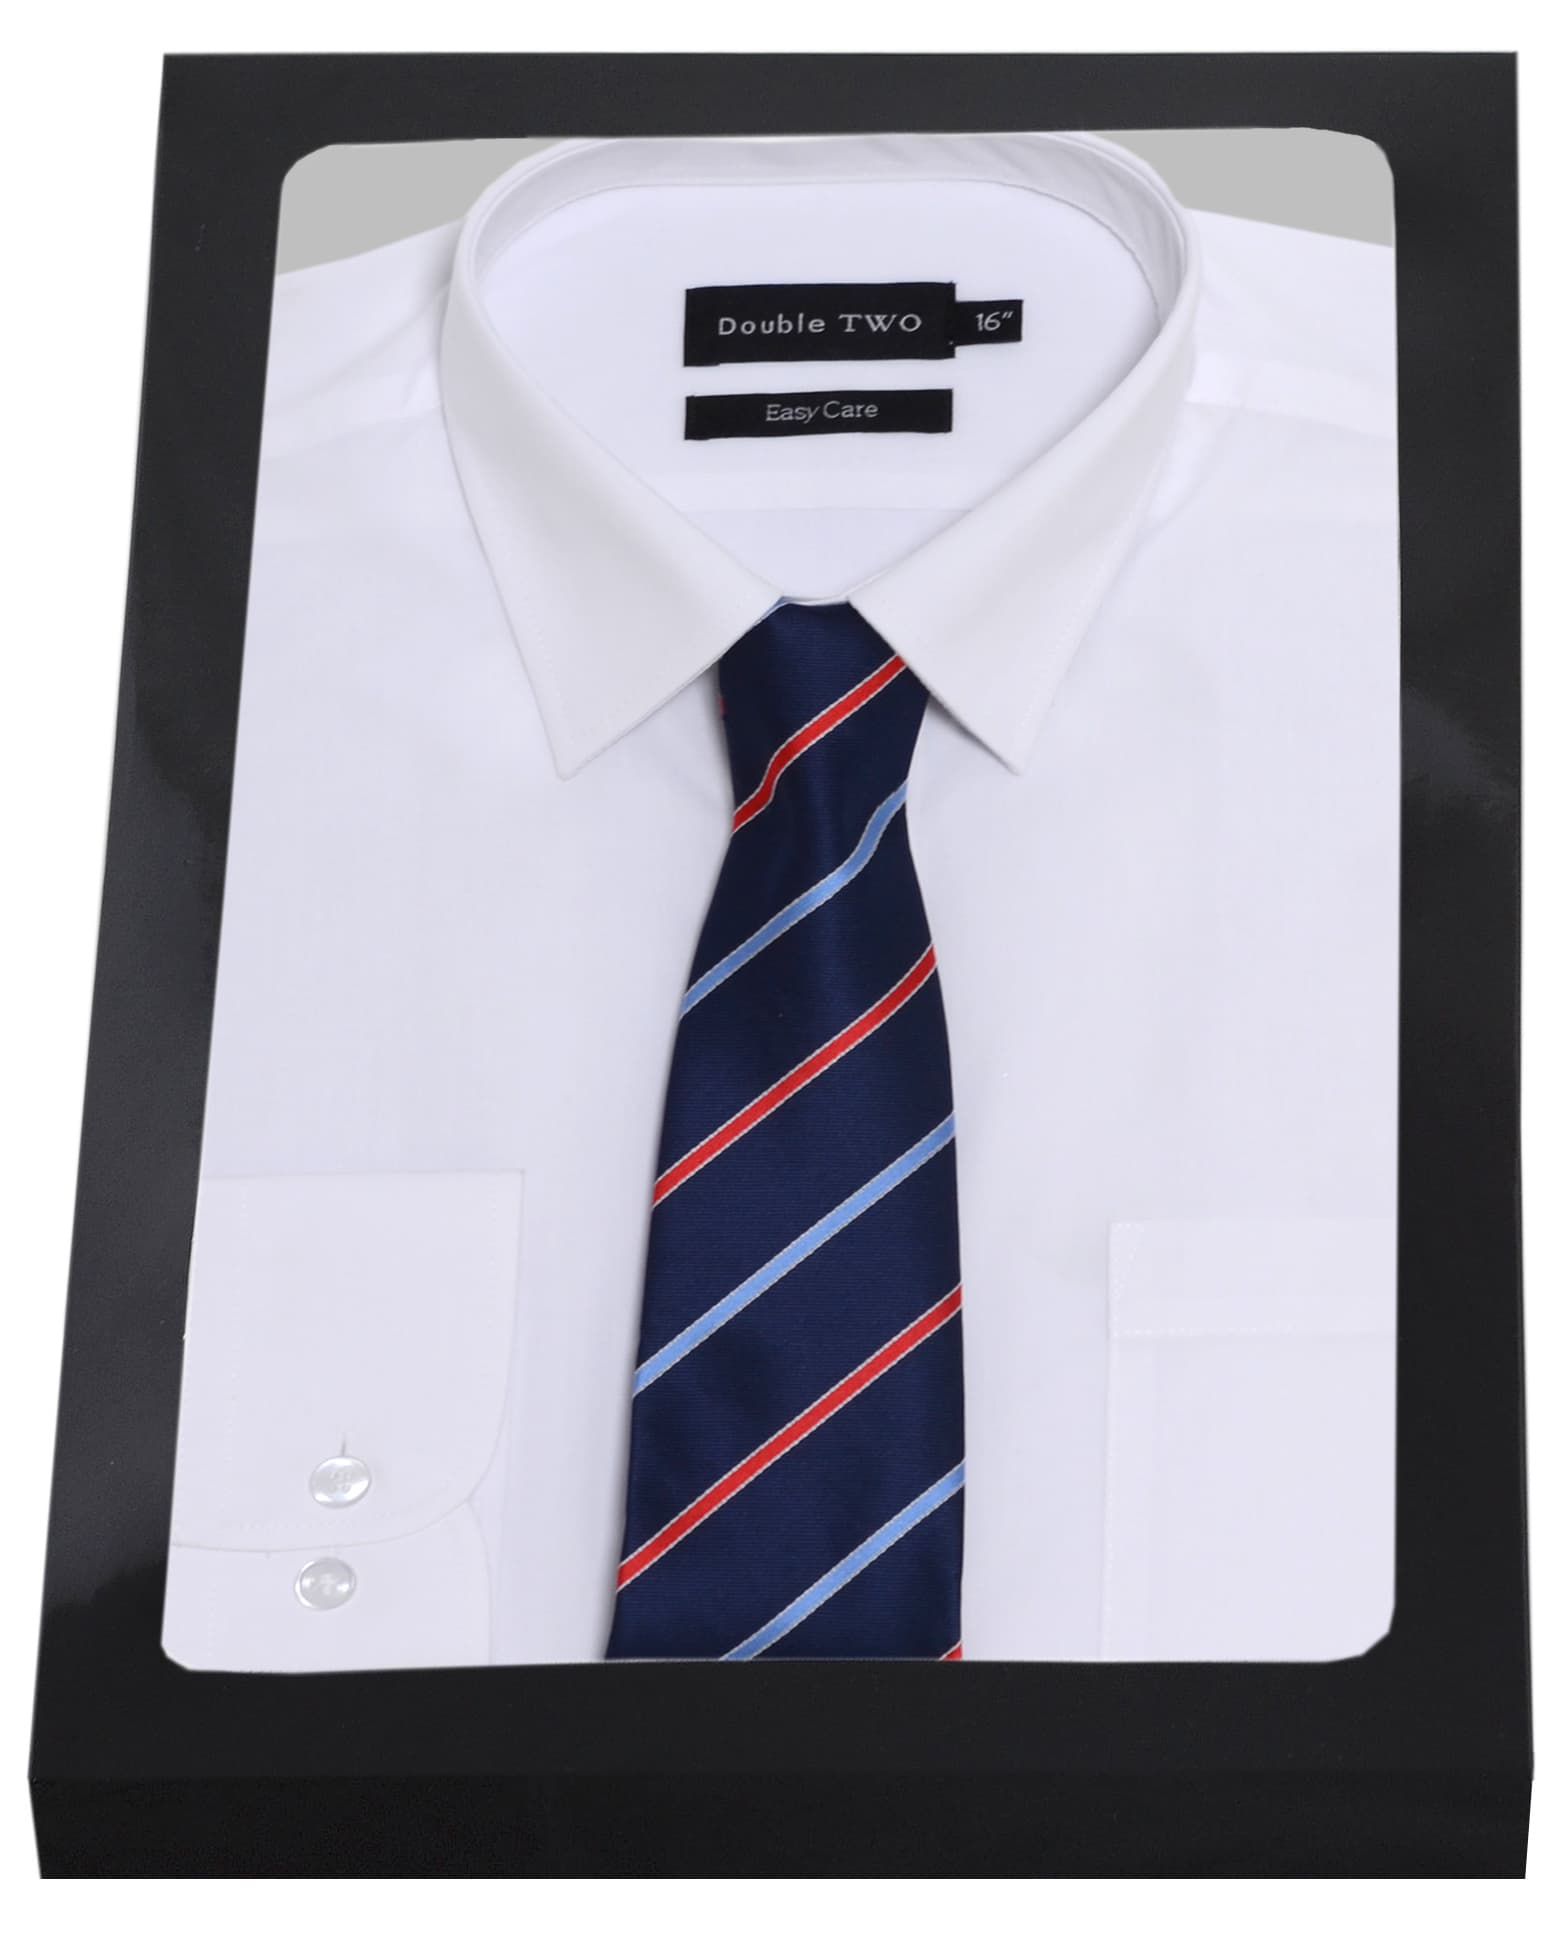 Shop Shirt and tie gift sets